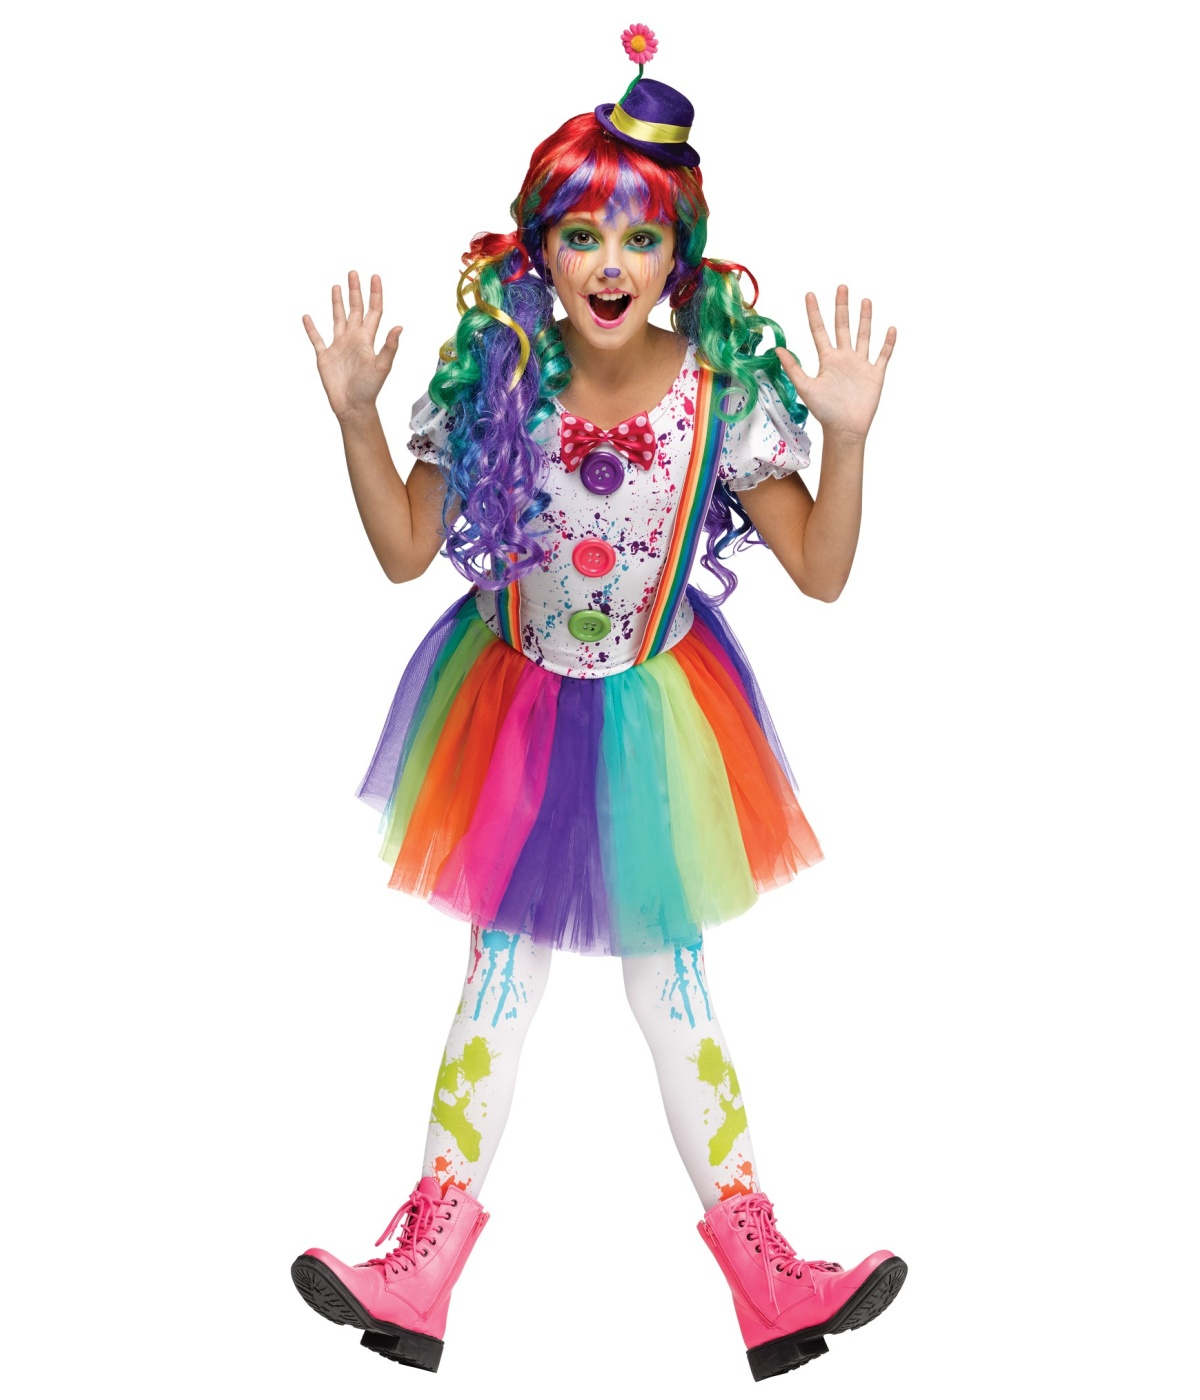 Image result for image clown female